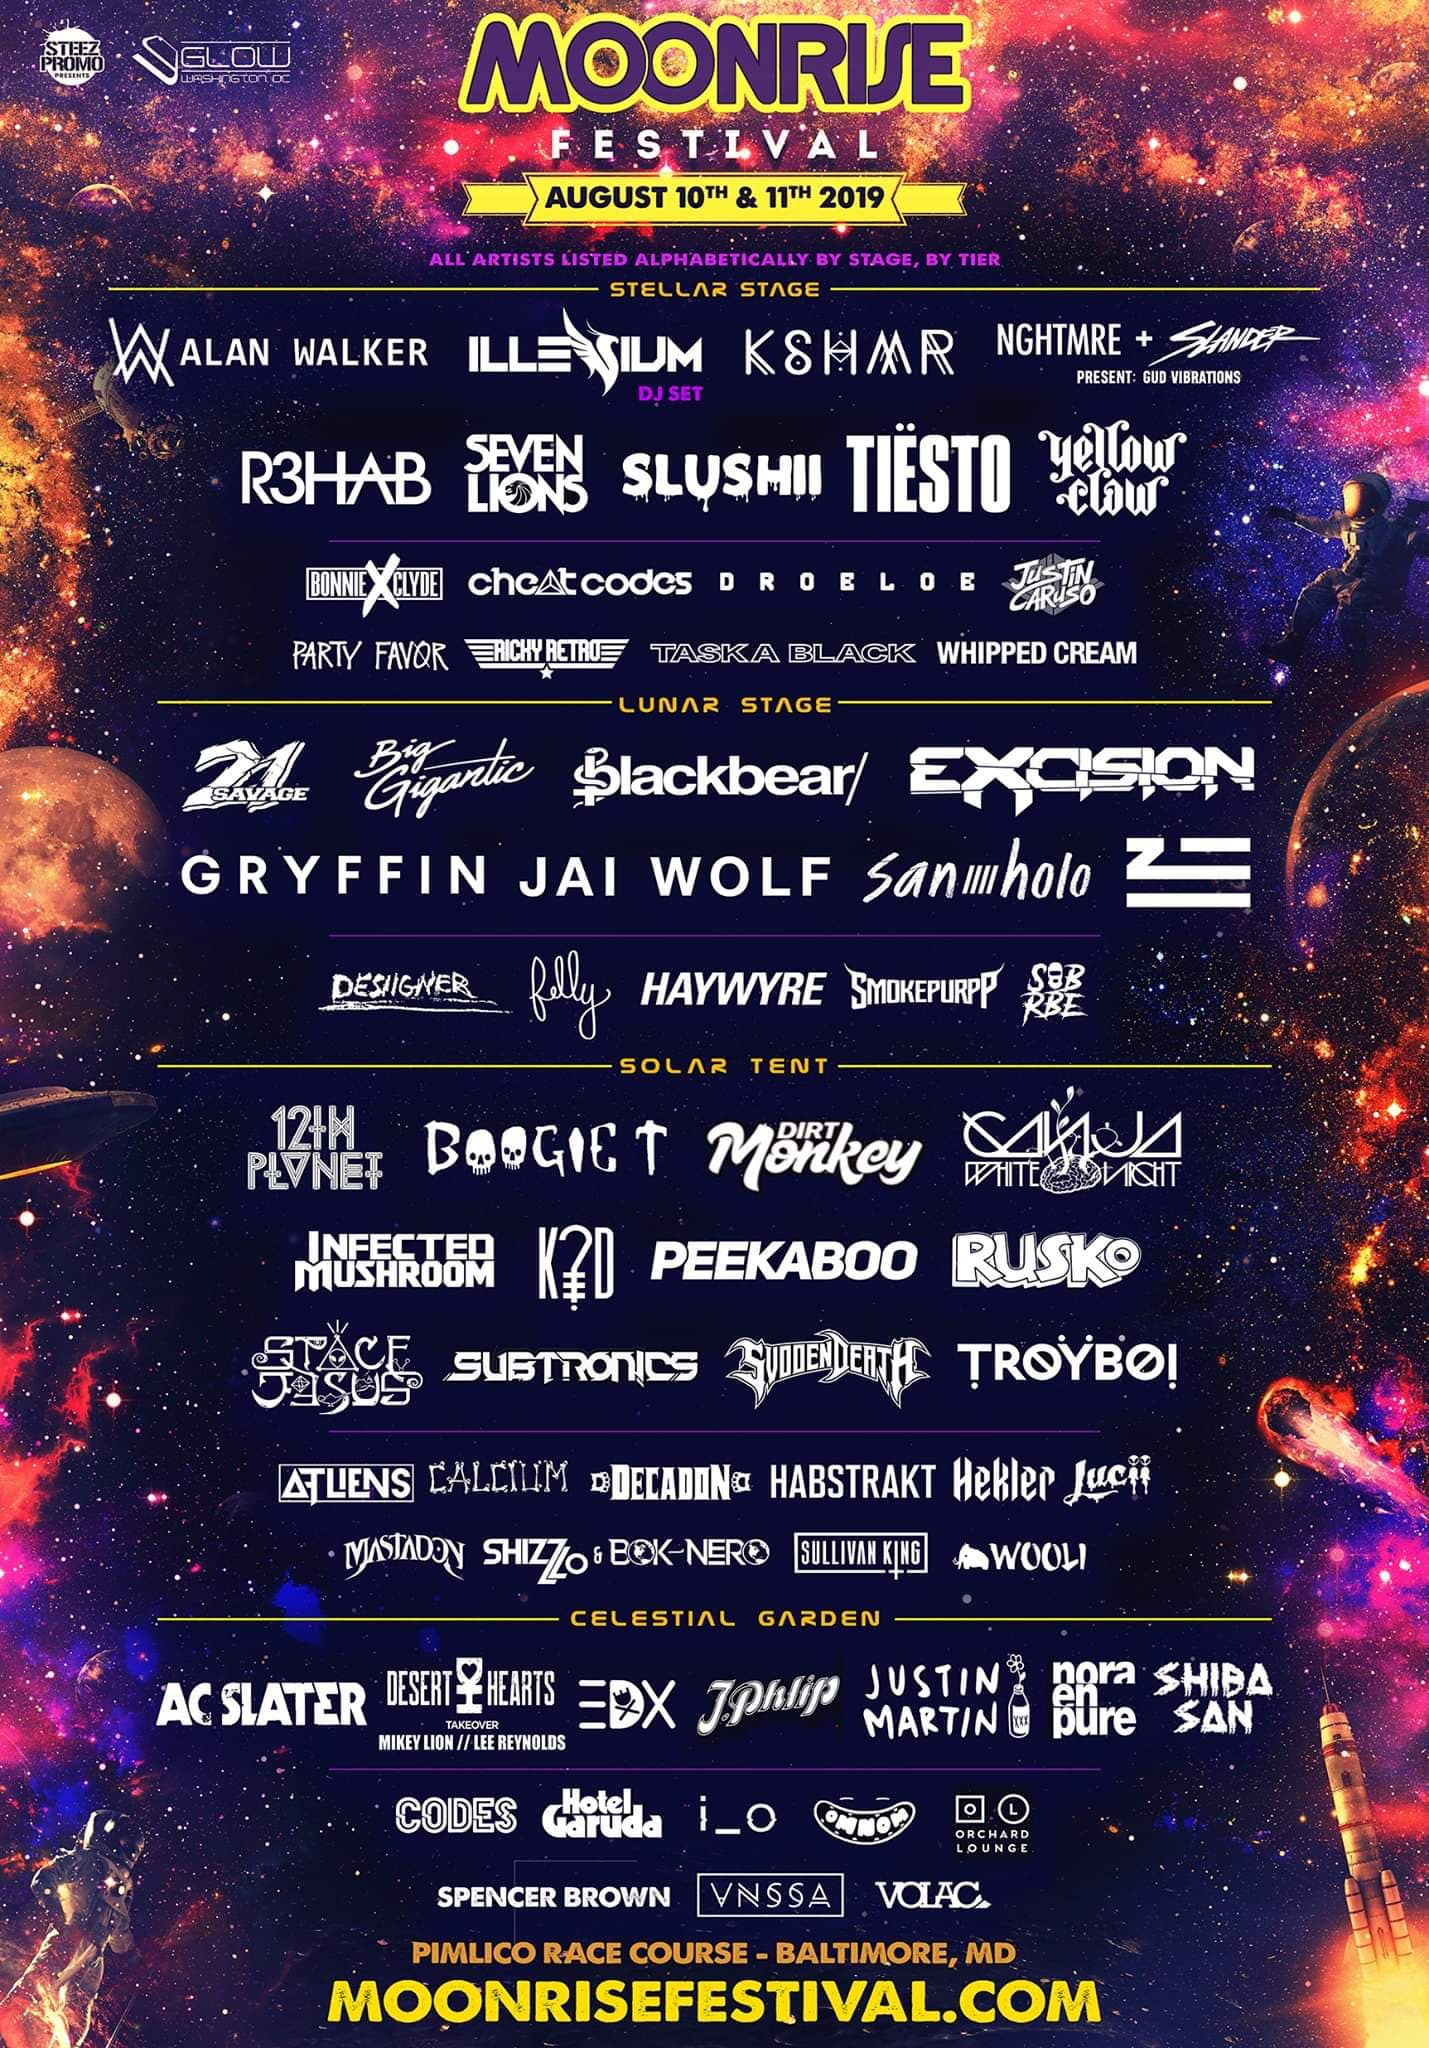 Moonrise Festival 2020.Moonrise Festival Reveals Incredible Lineup With Illenium